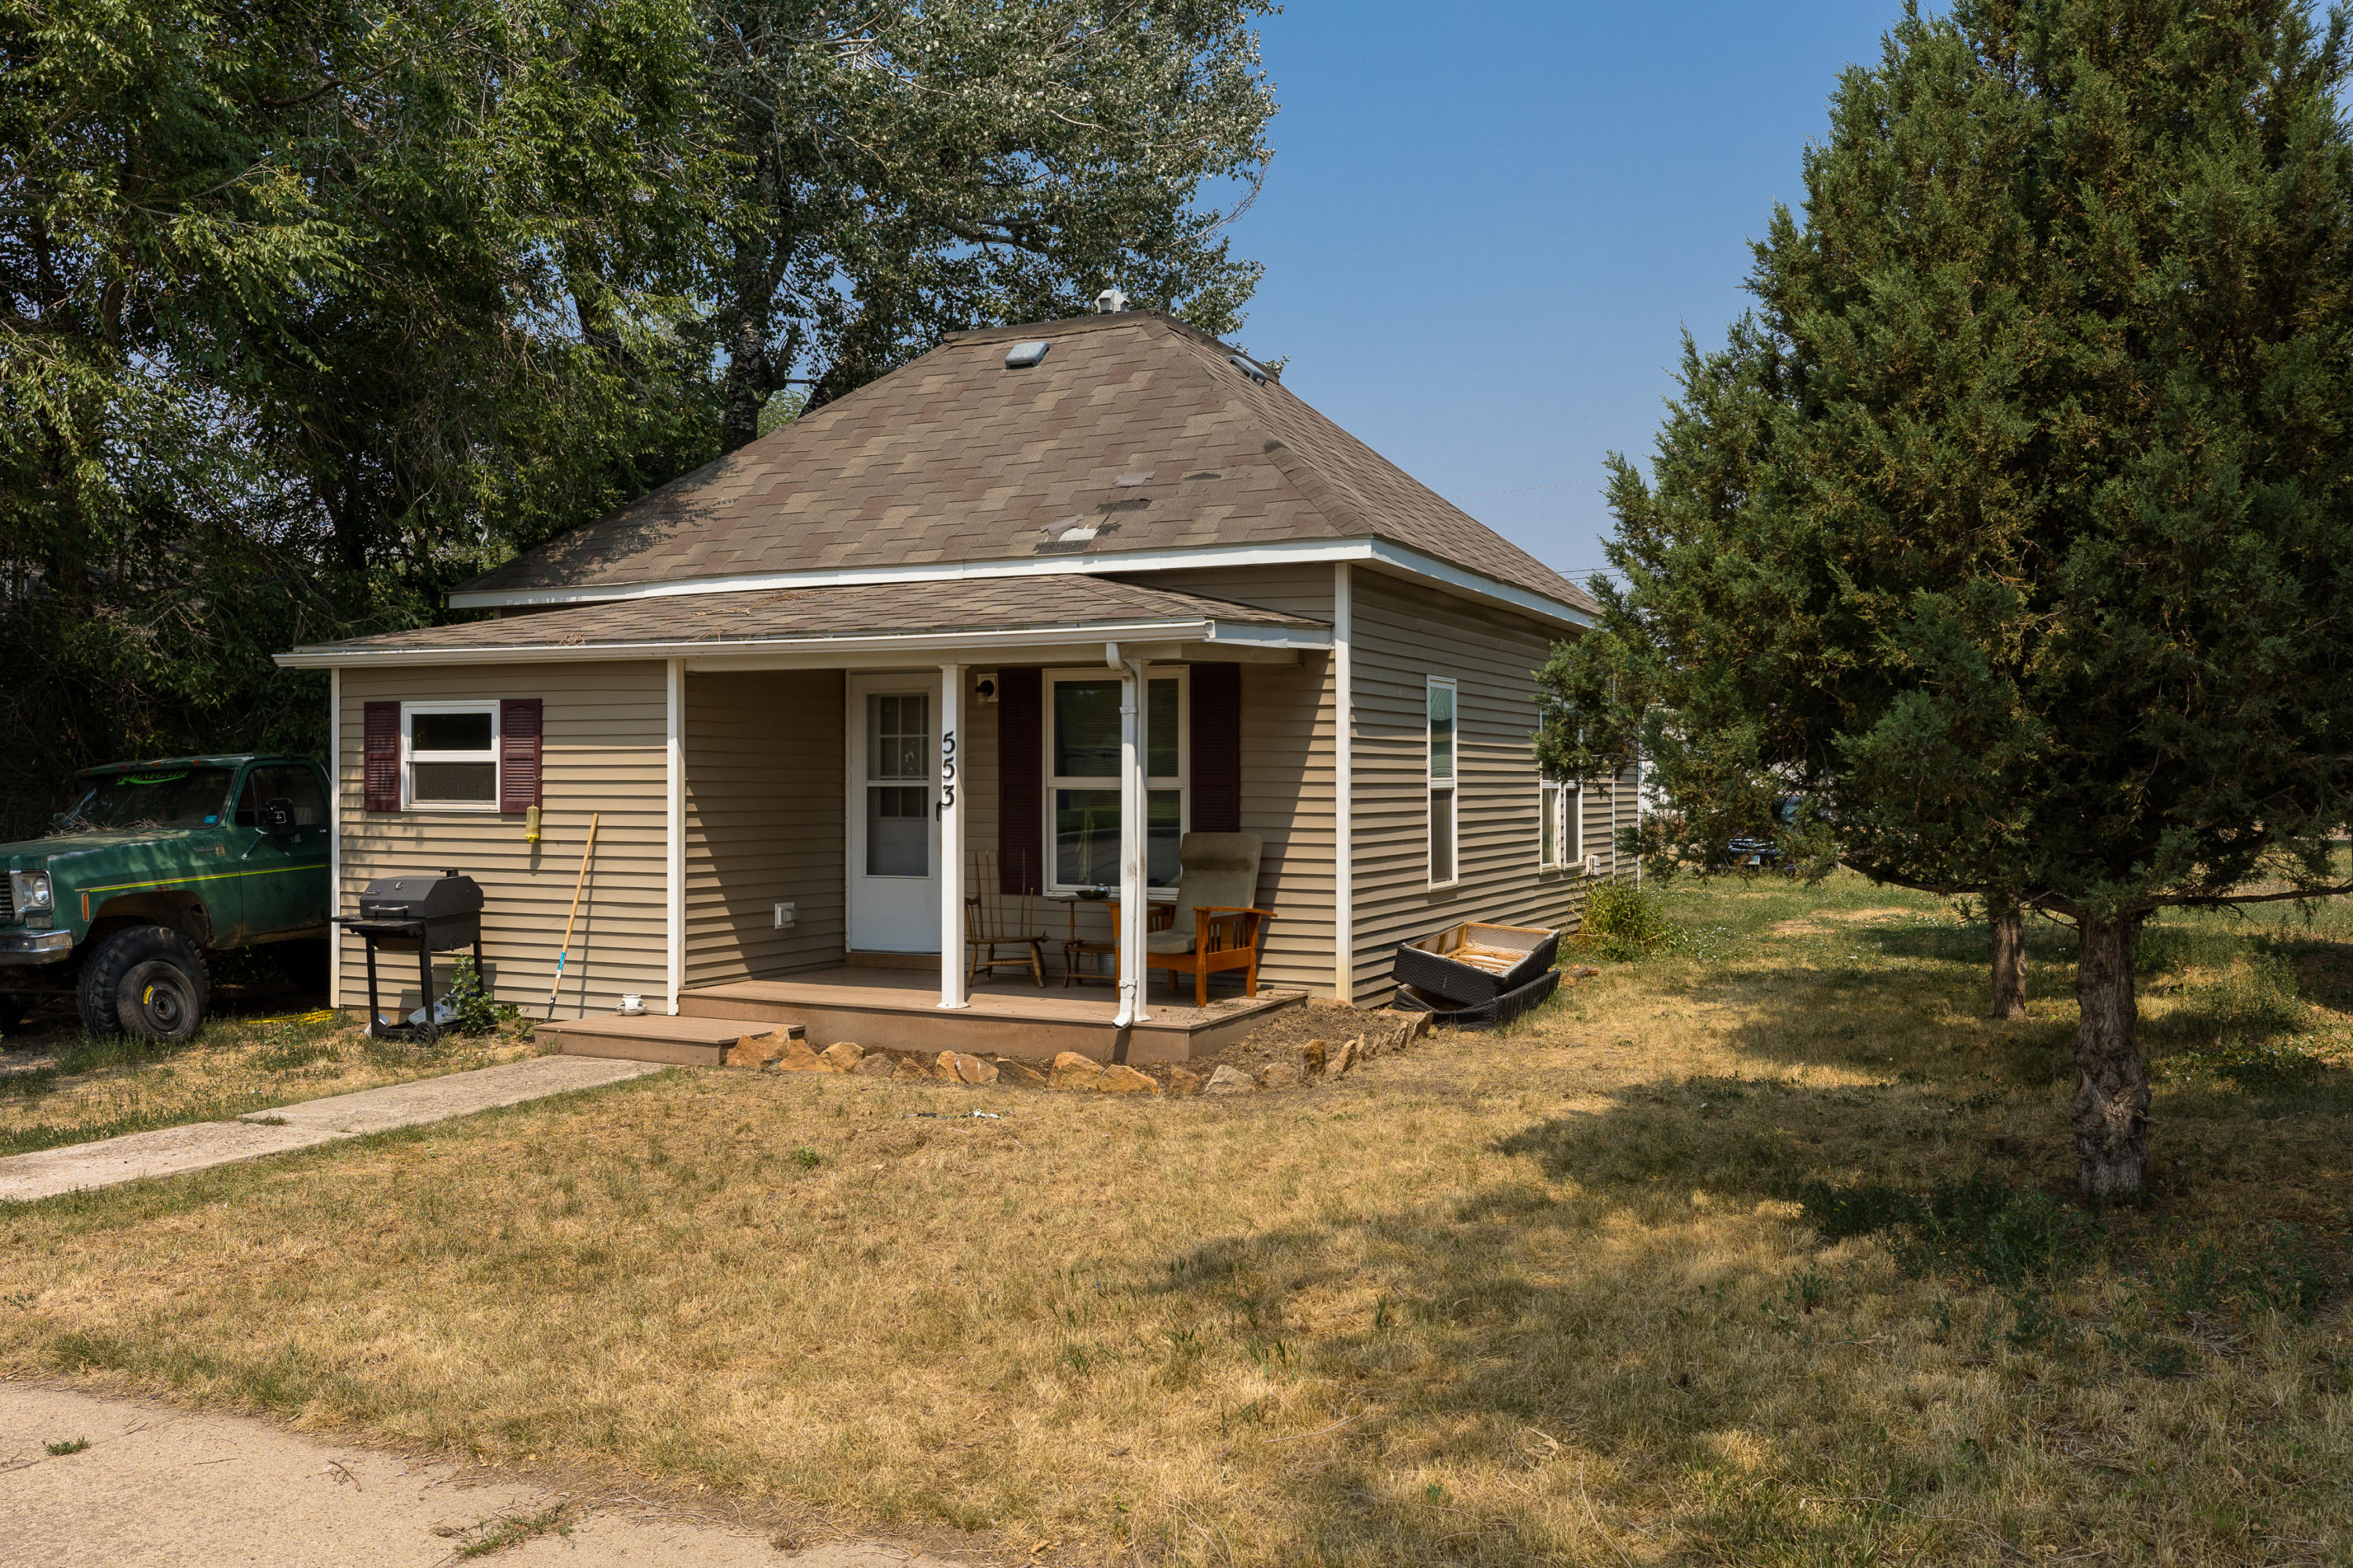 553 E 7th Street, Sheridan, Wyoming 82801, 1 Bedroom Bedrooms, ,0.75 BathroomBathrooms,Residential,For Sale,7th,21-832